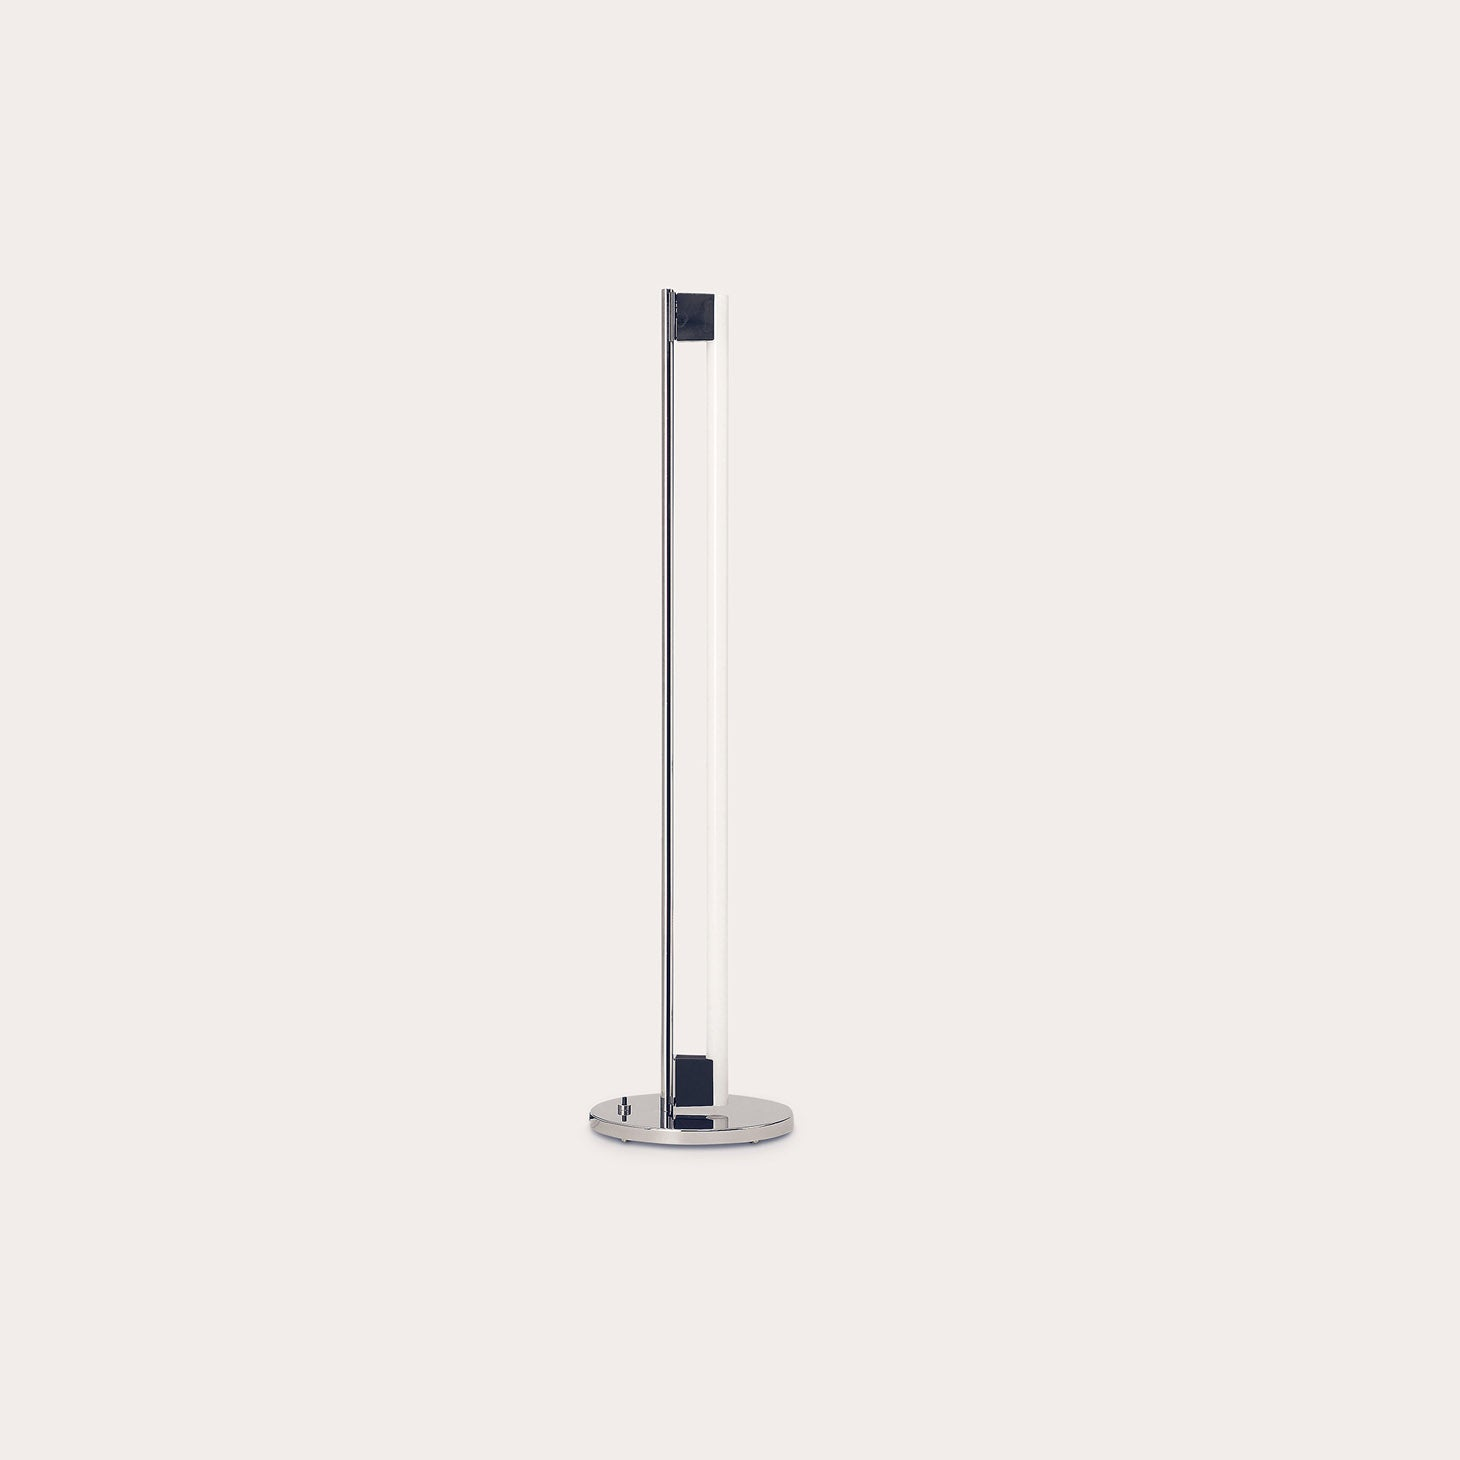 Tube Lighting Eileen Gray Designer Furniture Sku: 001-160-10000